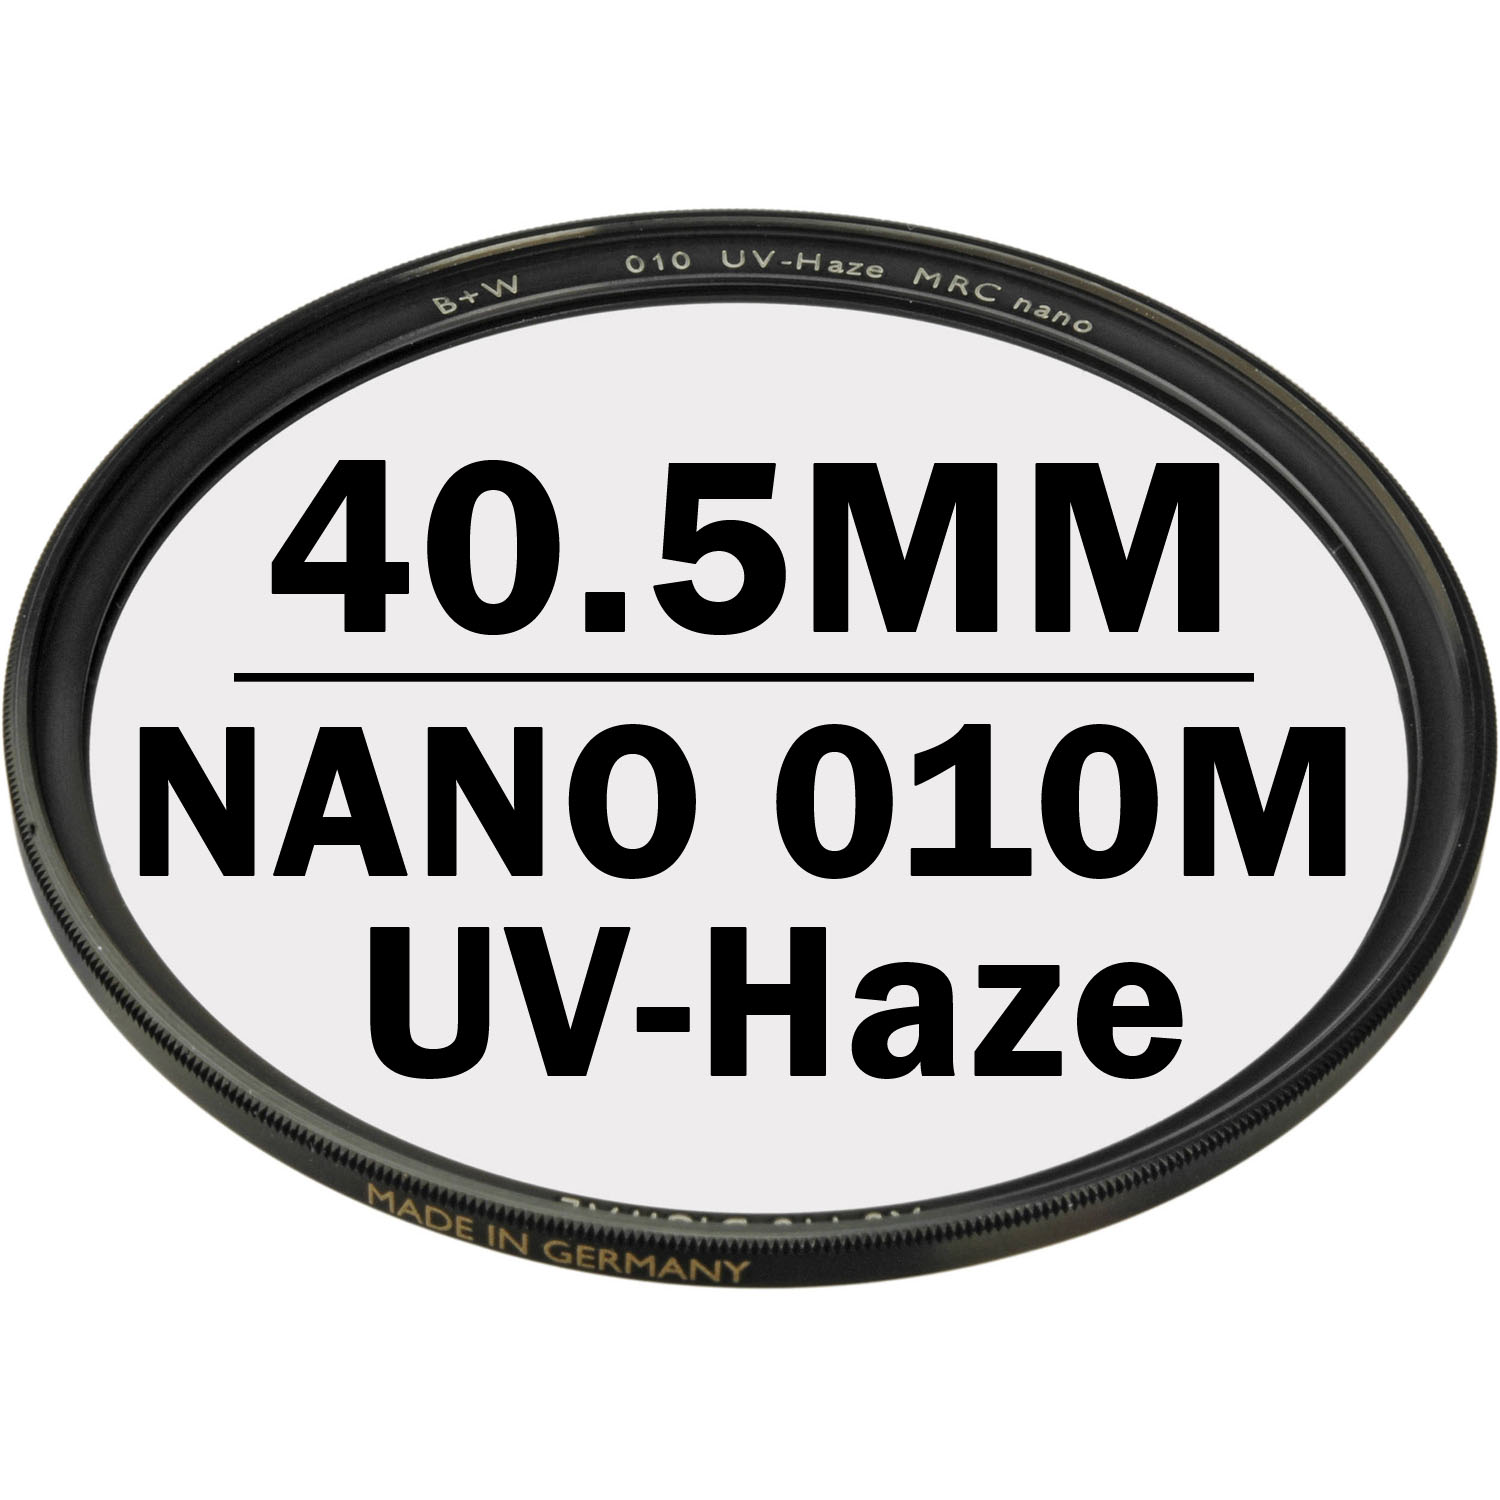 B+W 40.5 mm XS PRO UV Haze 010M MRC NANO Digital Filter